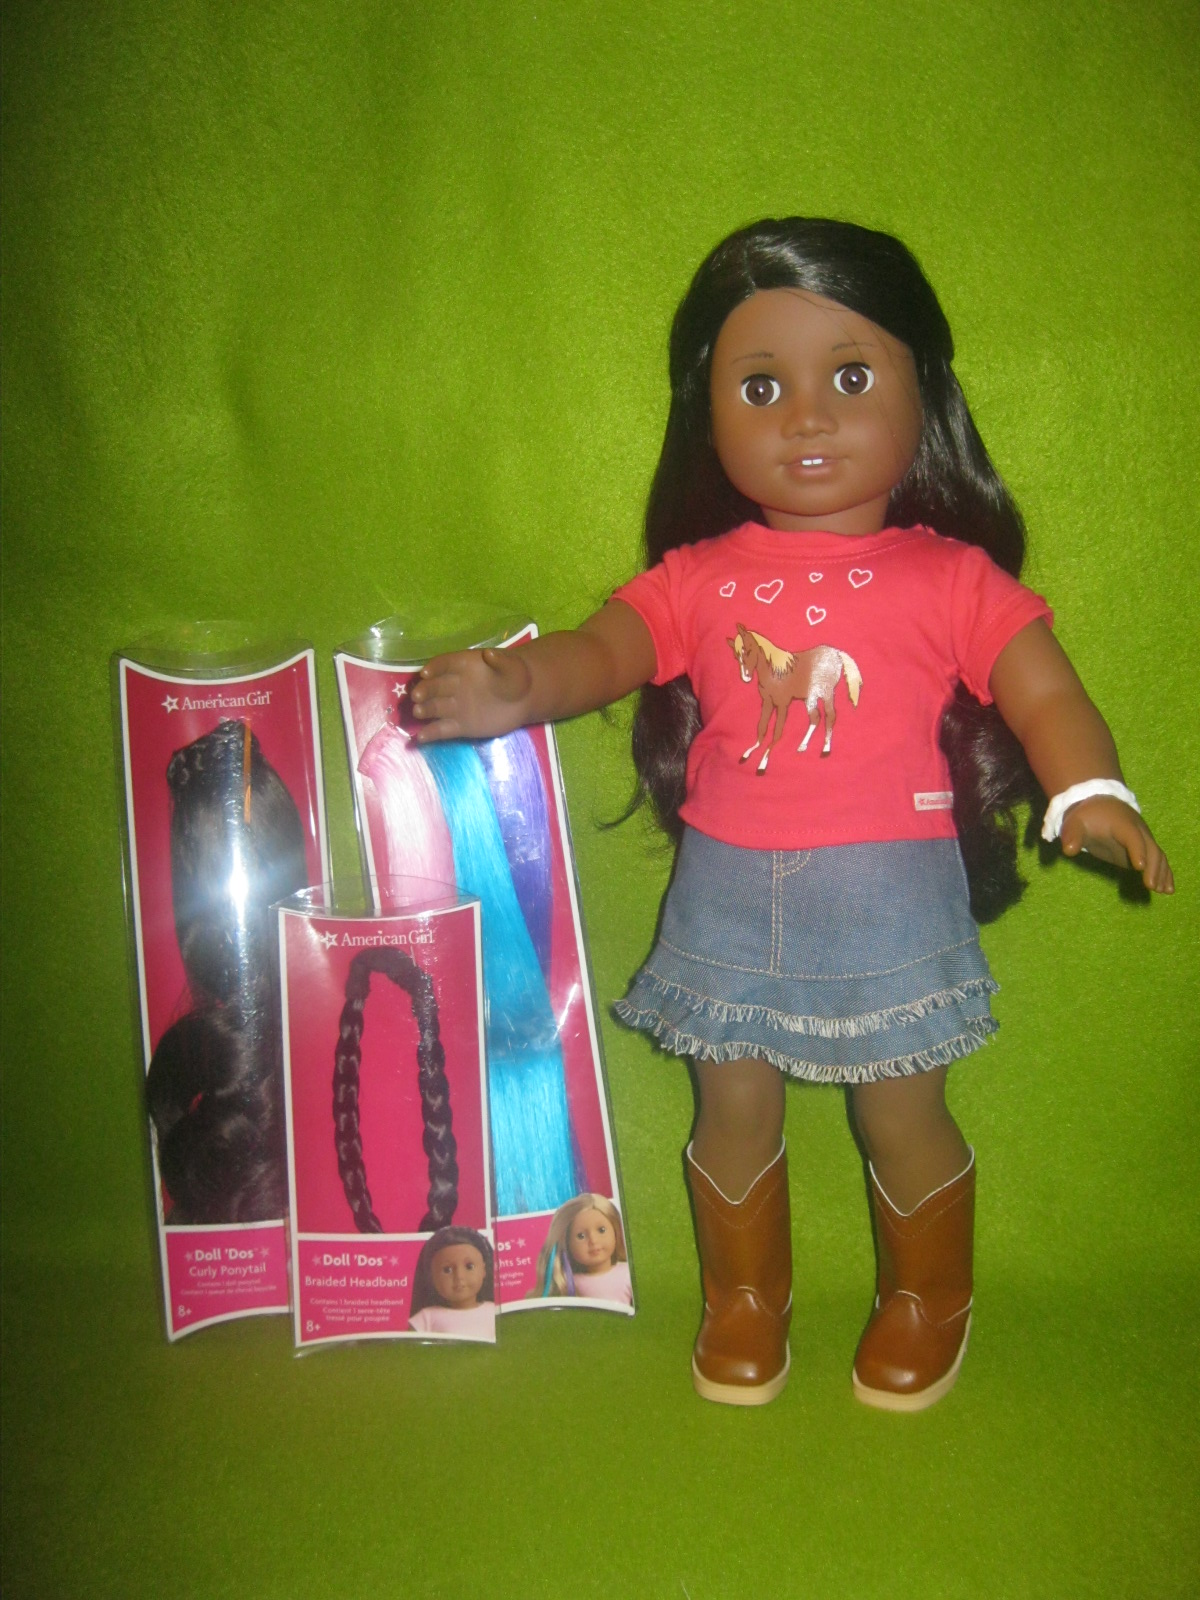 American Girl Western Riding Outfit 2010 One Left Tall Cowboy Boot For Doll Only